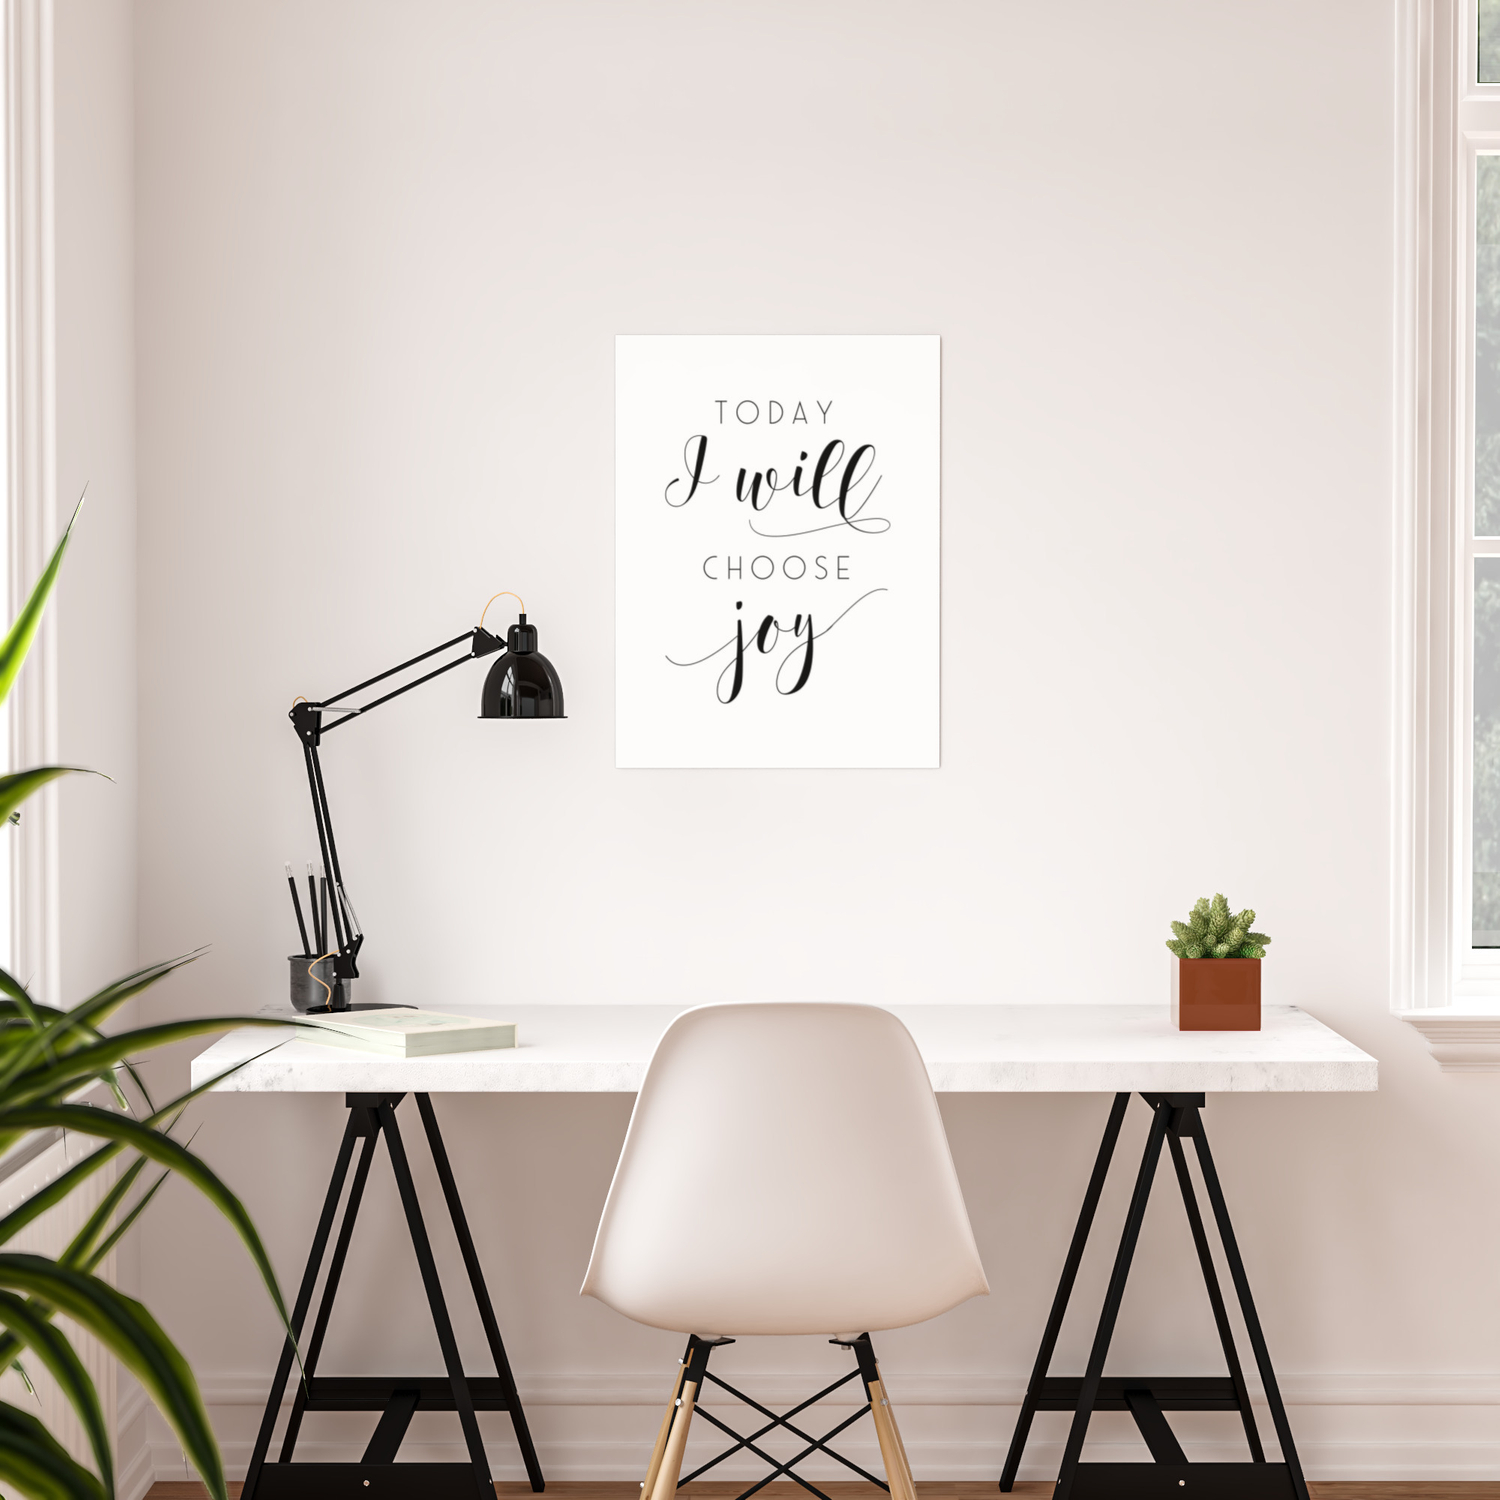 Printable Art Today I Will Choose Joy Joy Sign Relax Sign Meditation Yoga Print Room Decor Typo Poster By Alextypography Society6